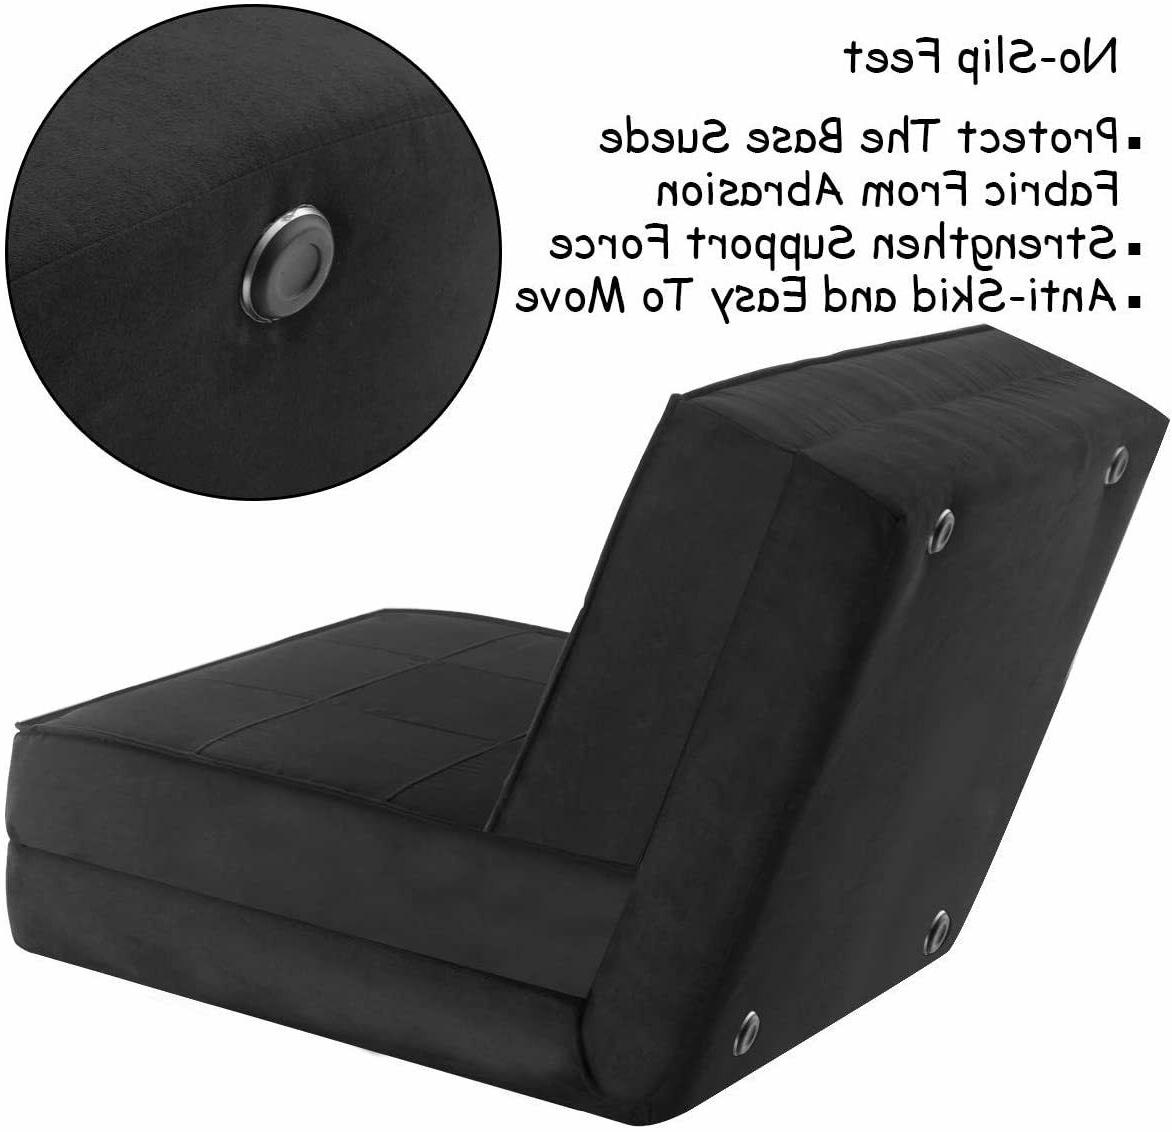 Giantex Convertible Flip Game Bed Couch